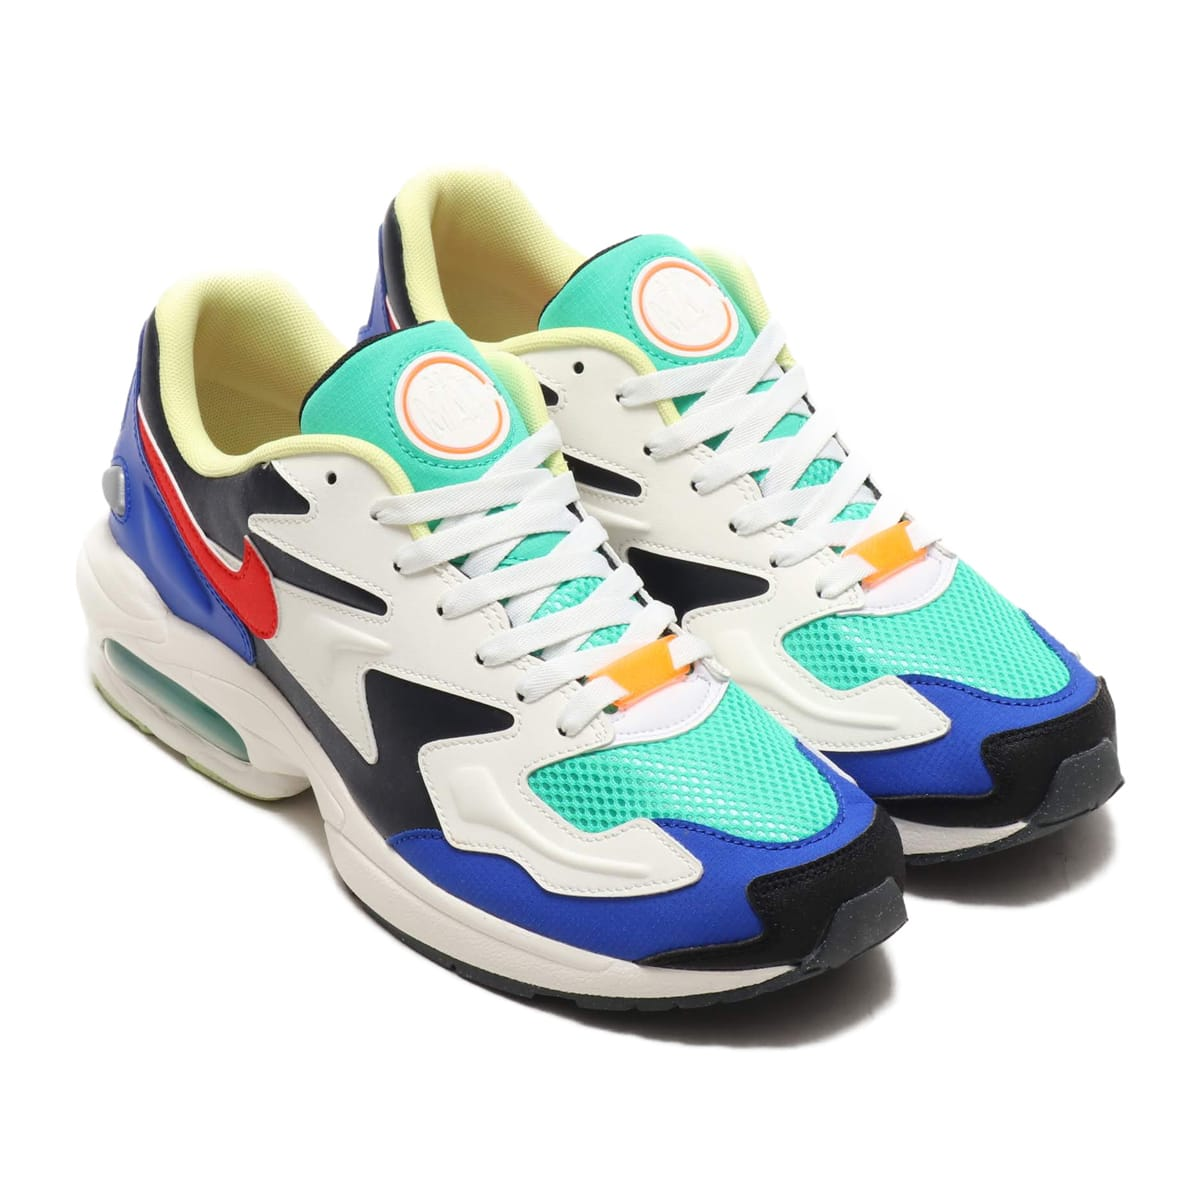 NIKE AIR MAX2 LIGHT SP DARK OBSIDIAN/SAIL-RACER BLUE 19SU-S_photo_large